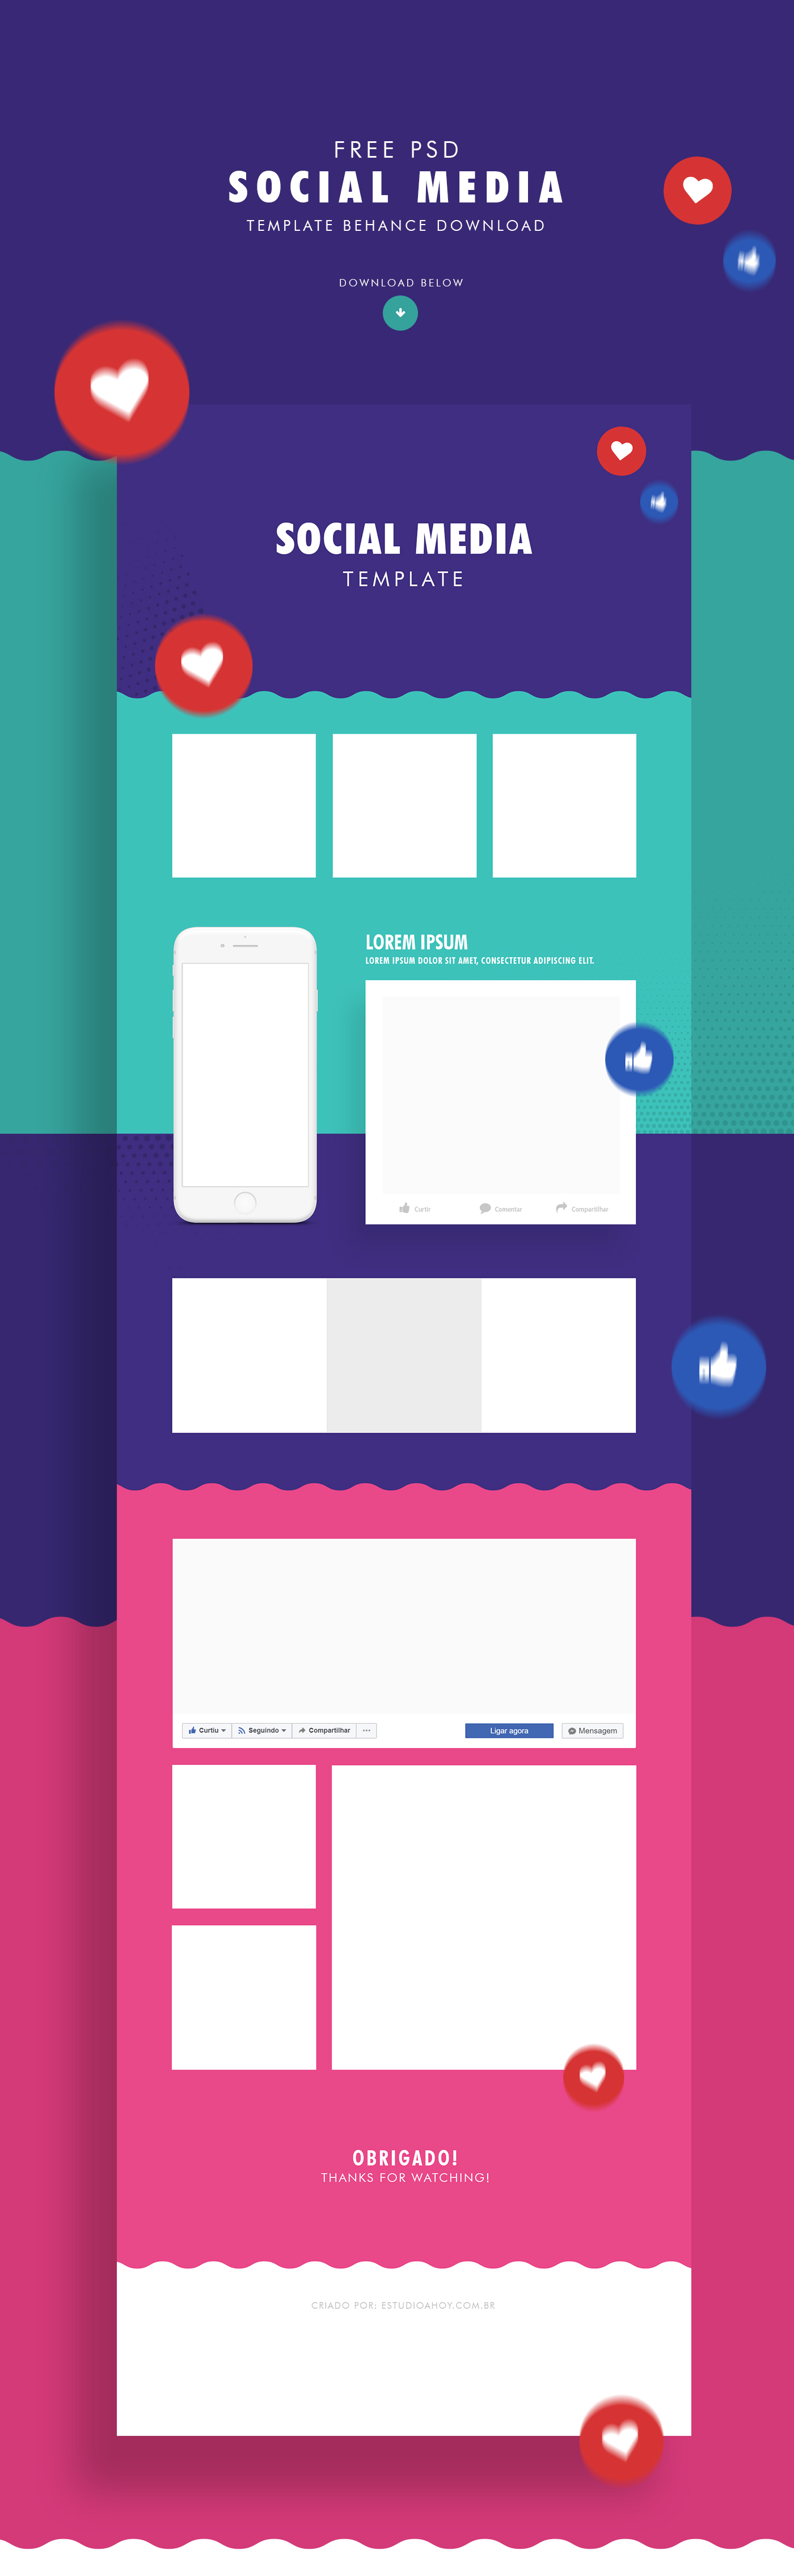 social media free template on behance